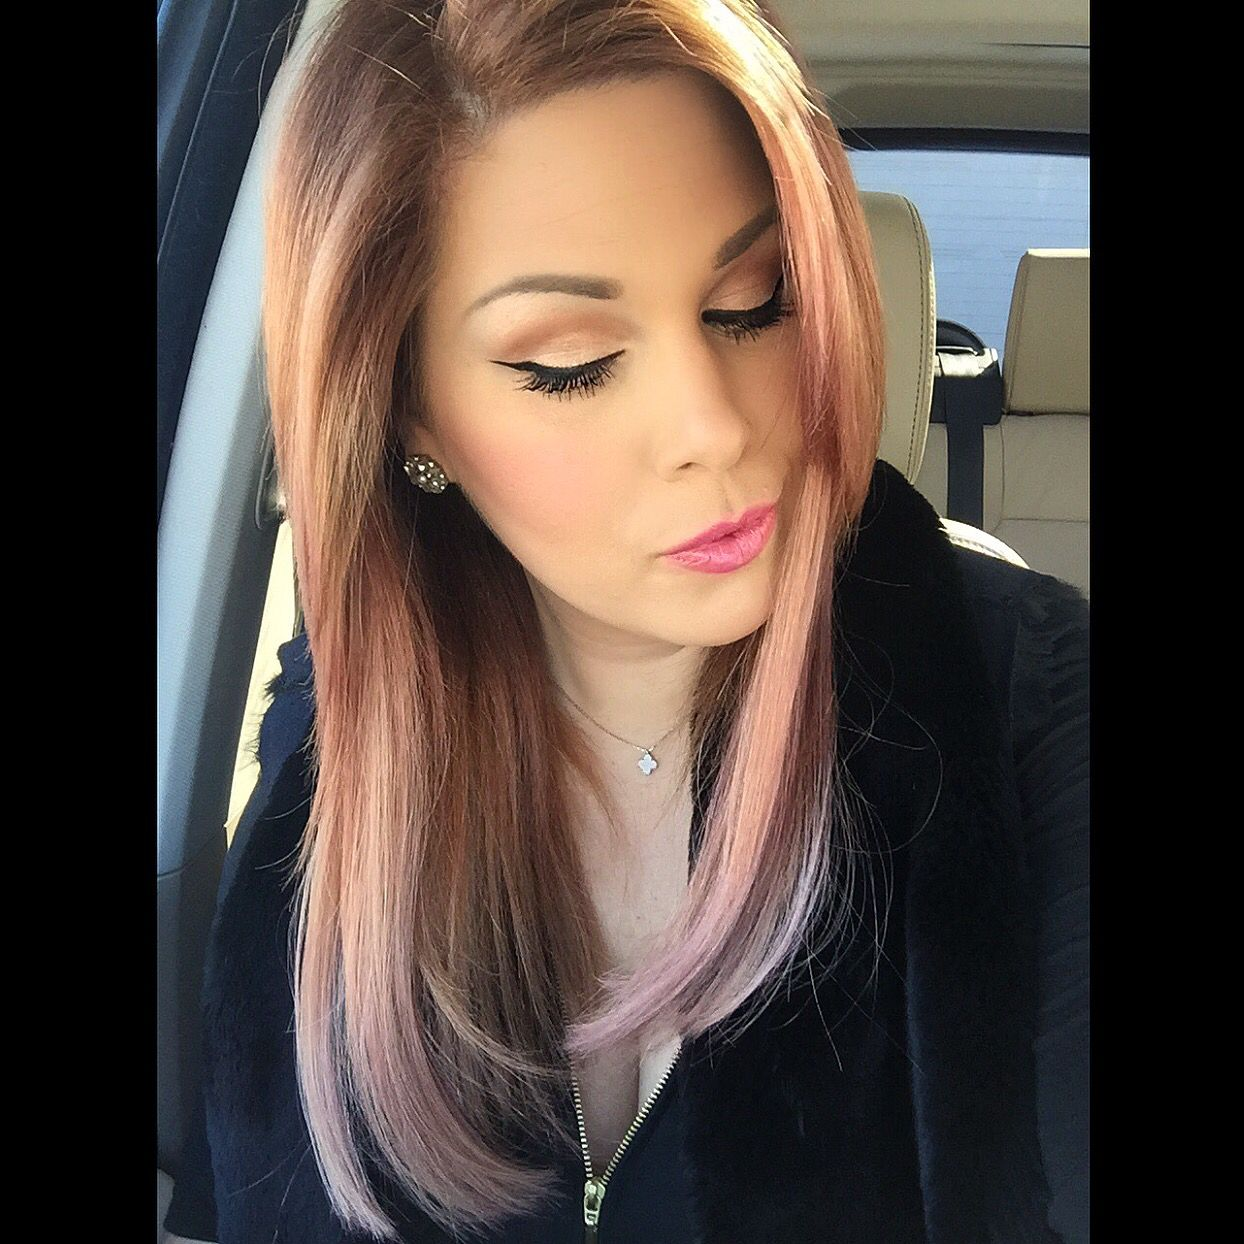 Pinkhair pastel hair for spring thereus nothing like a splash of